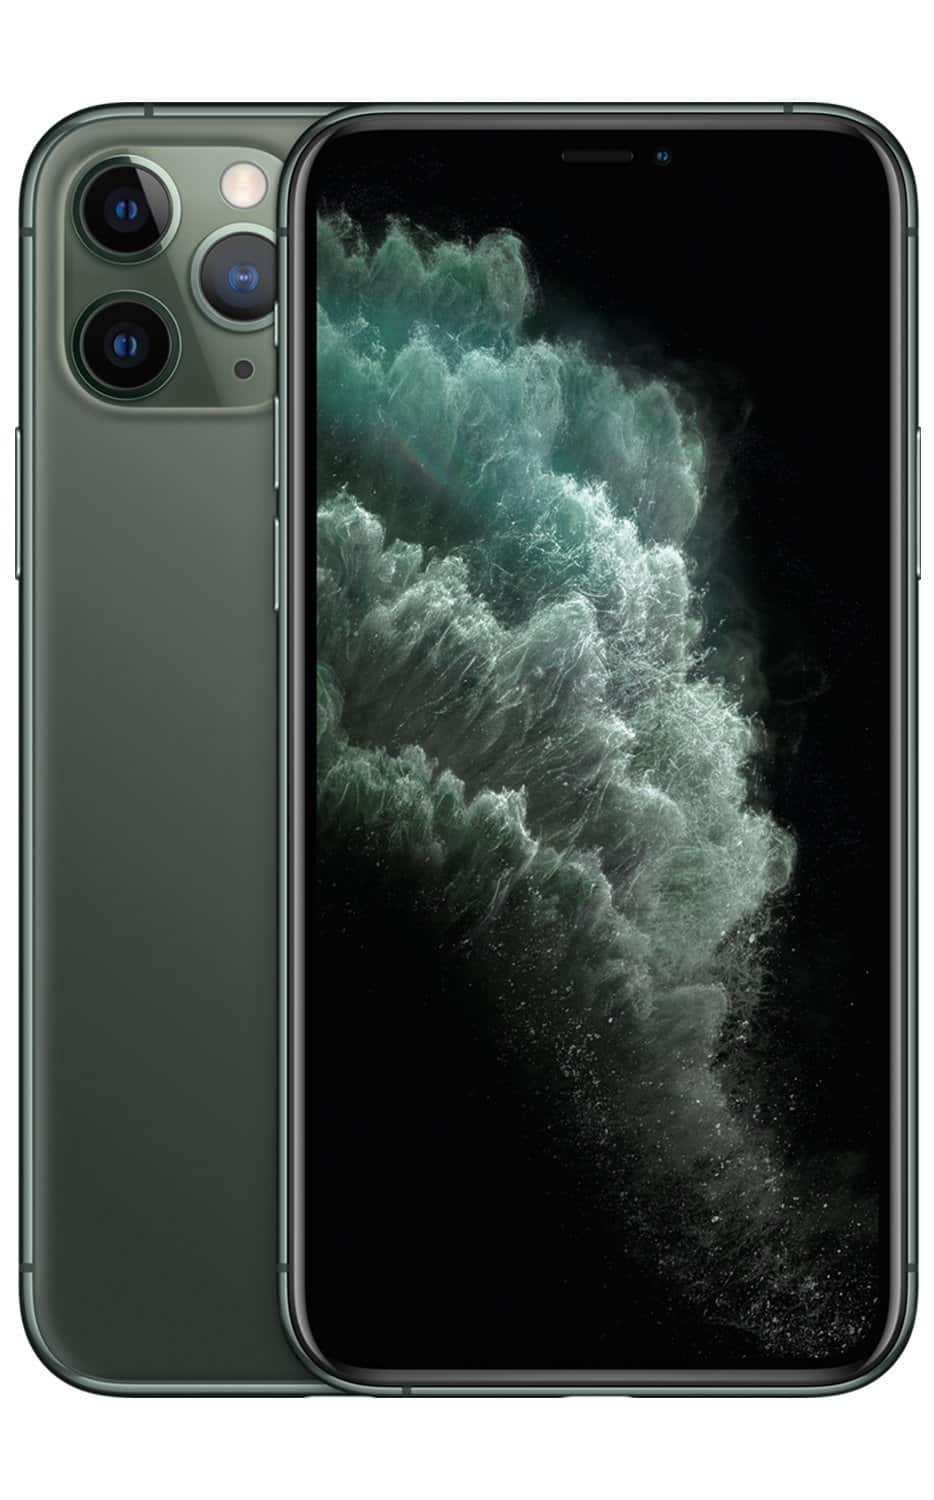 Port-in A New Line to T-Mobile with Trade-in and Get $700 / $1000 off iPhone 11 (Pro) over 24 Months